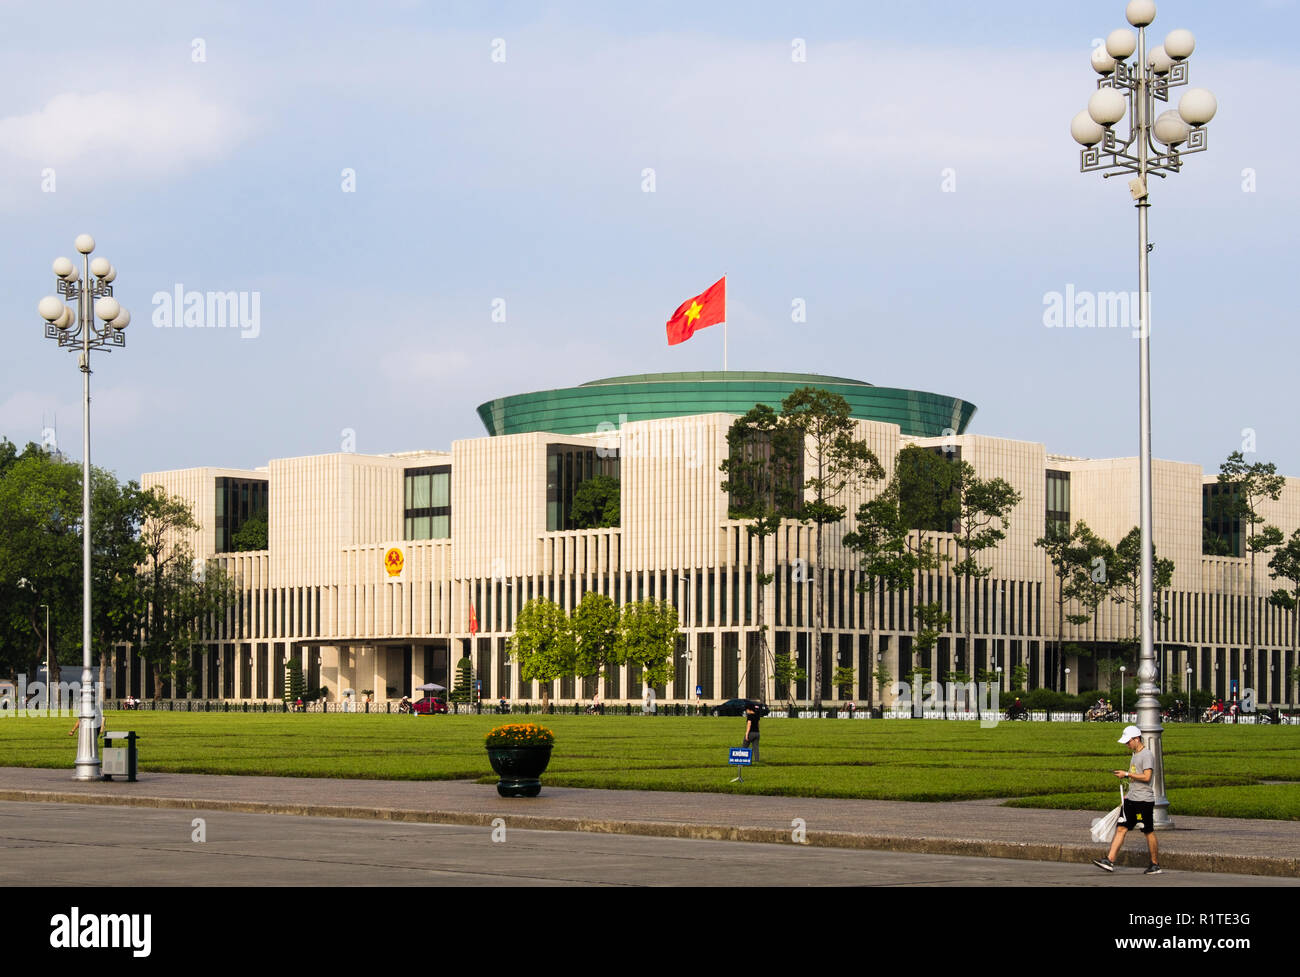 Vietnamese flag flying on new  21st century modern National Assembly House Parliament building. Hanoi, Vietnam, Asia - Stock Image